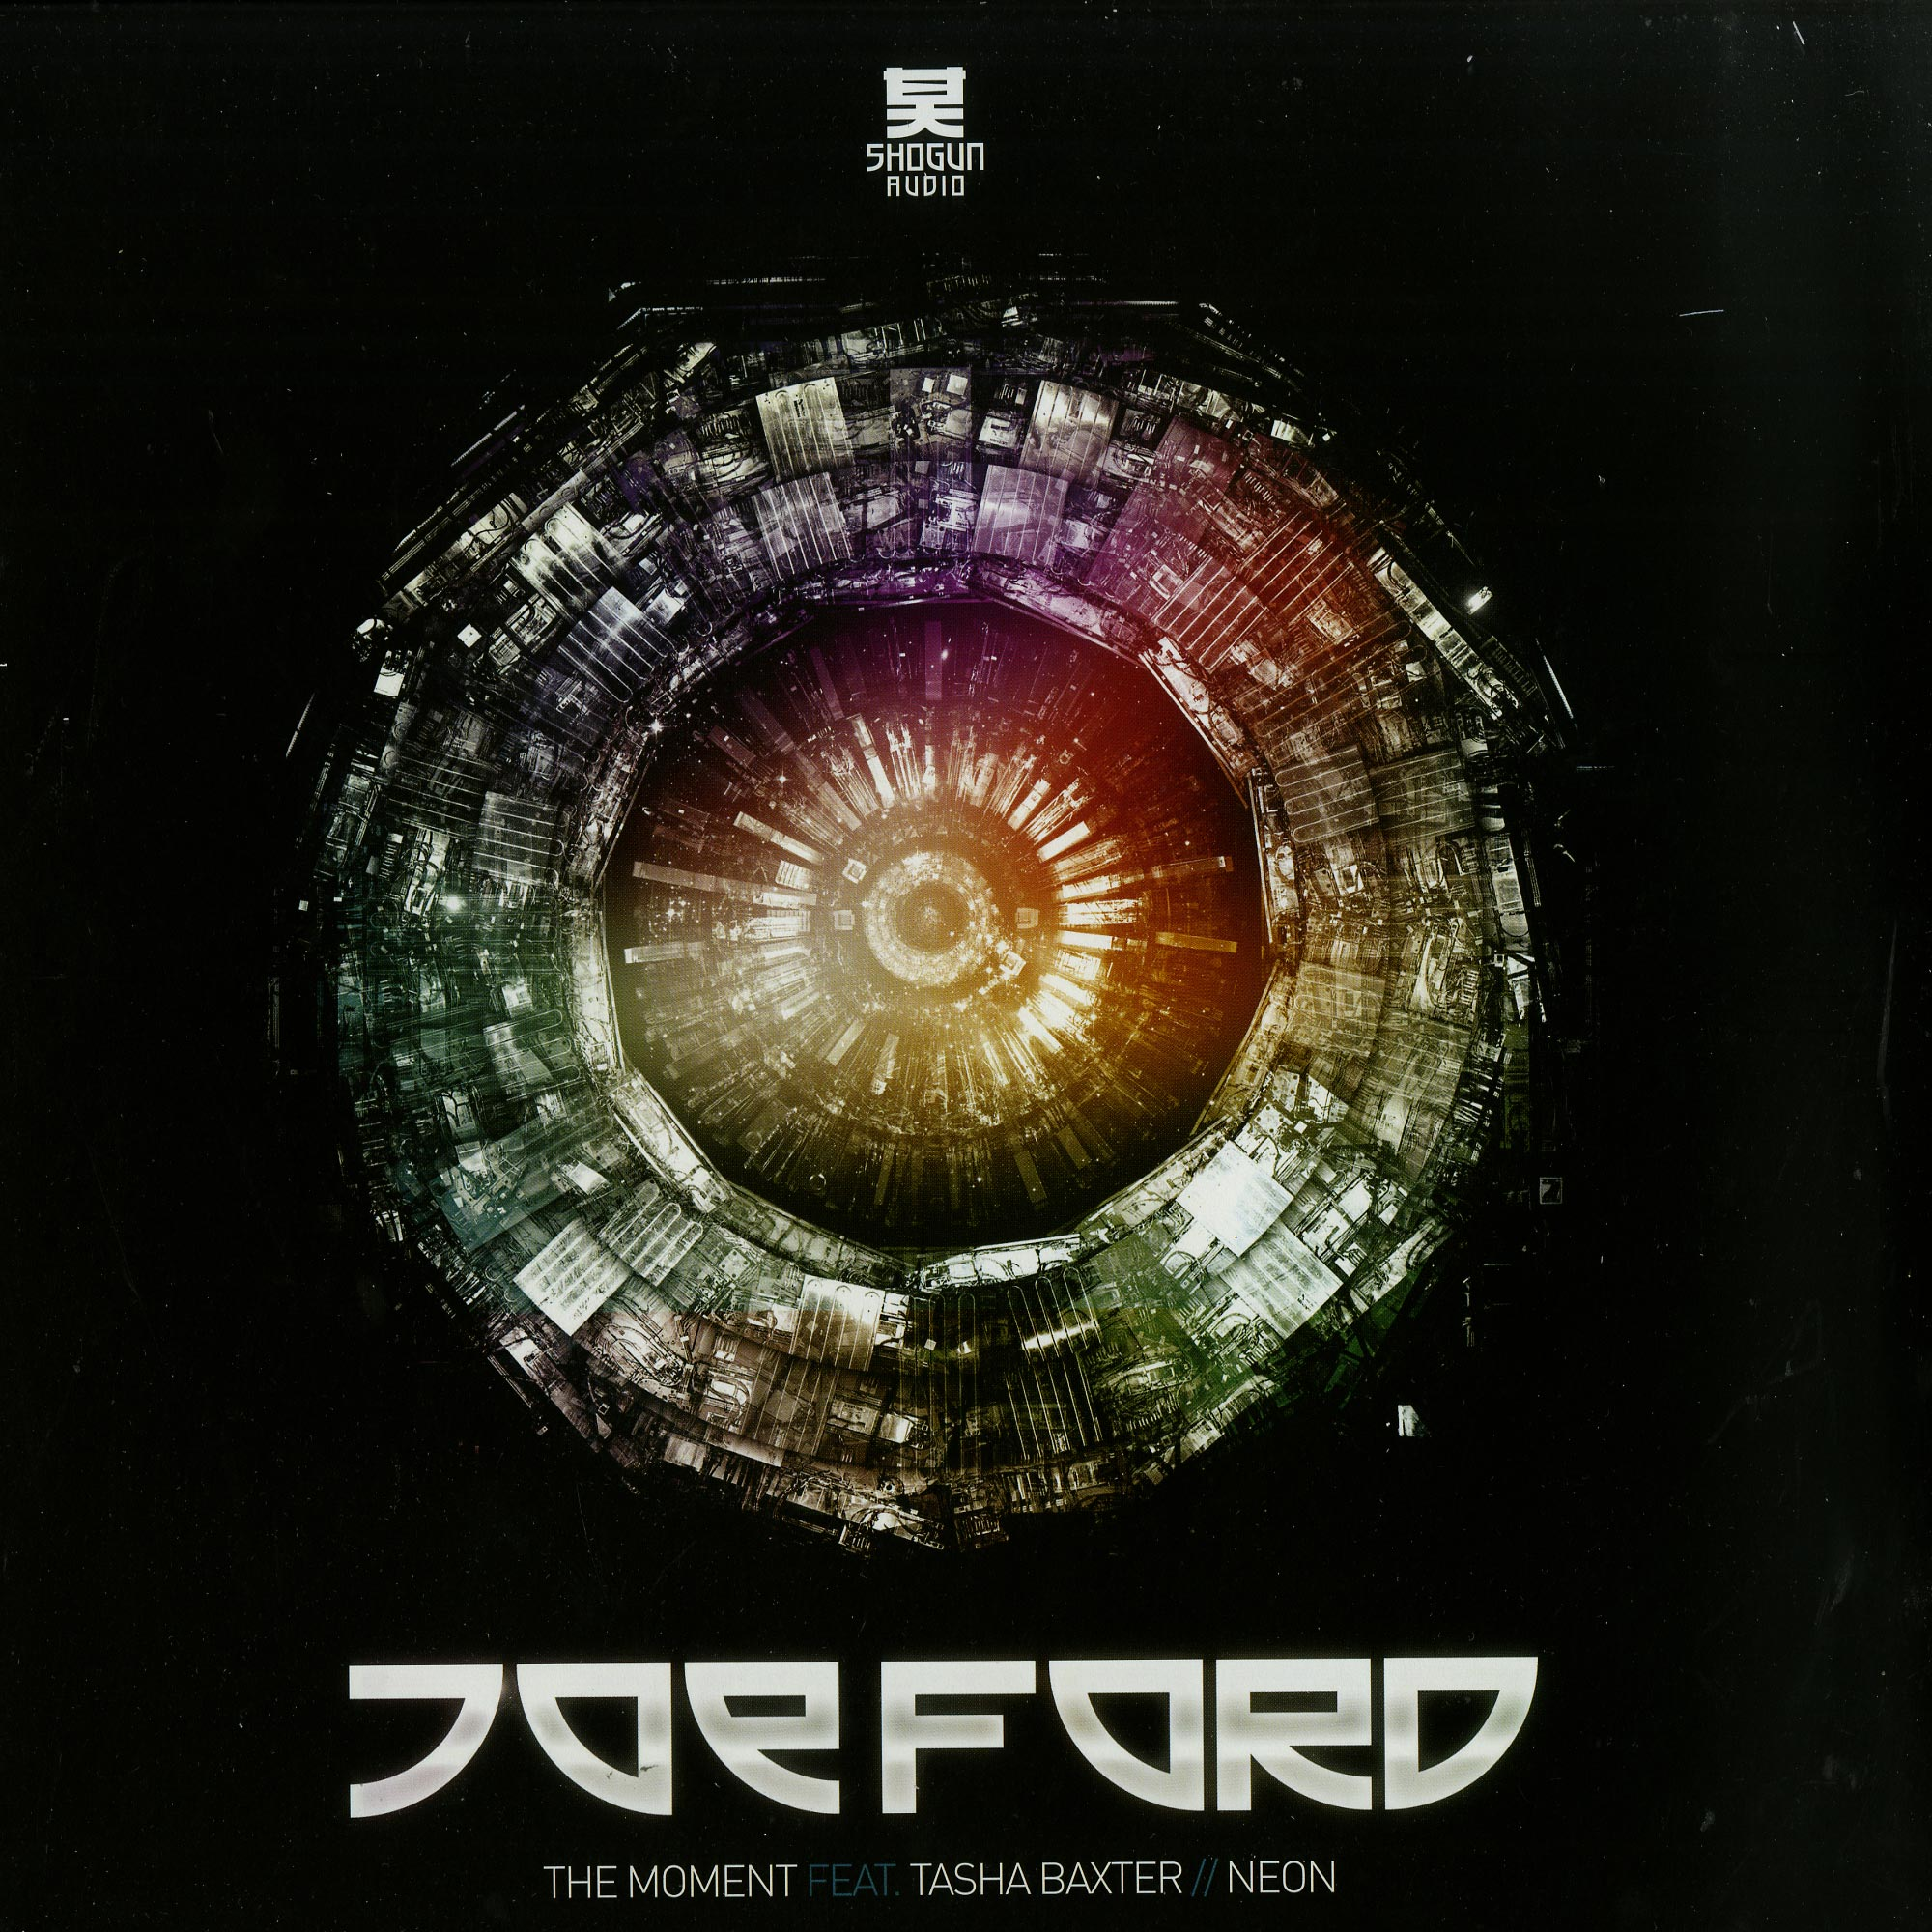 Joe Ford - THE MOMENT / NEON